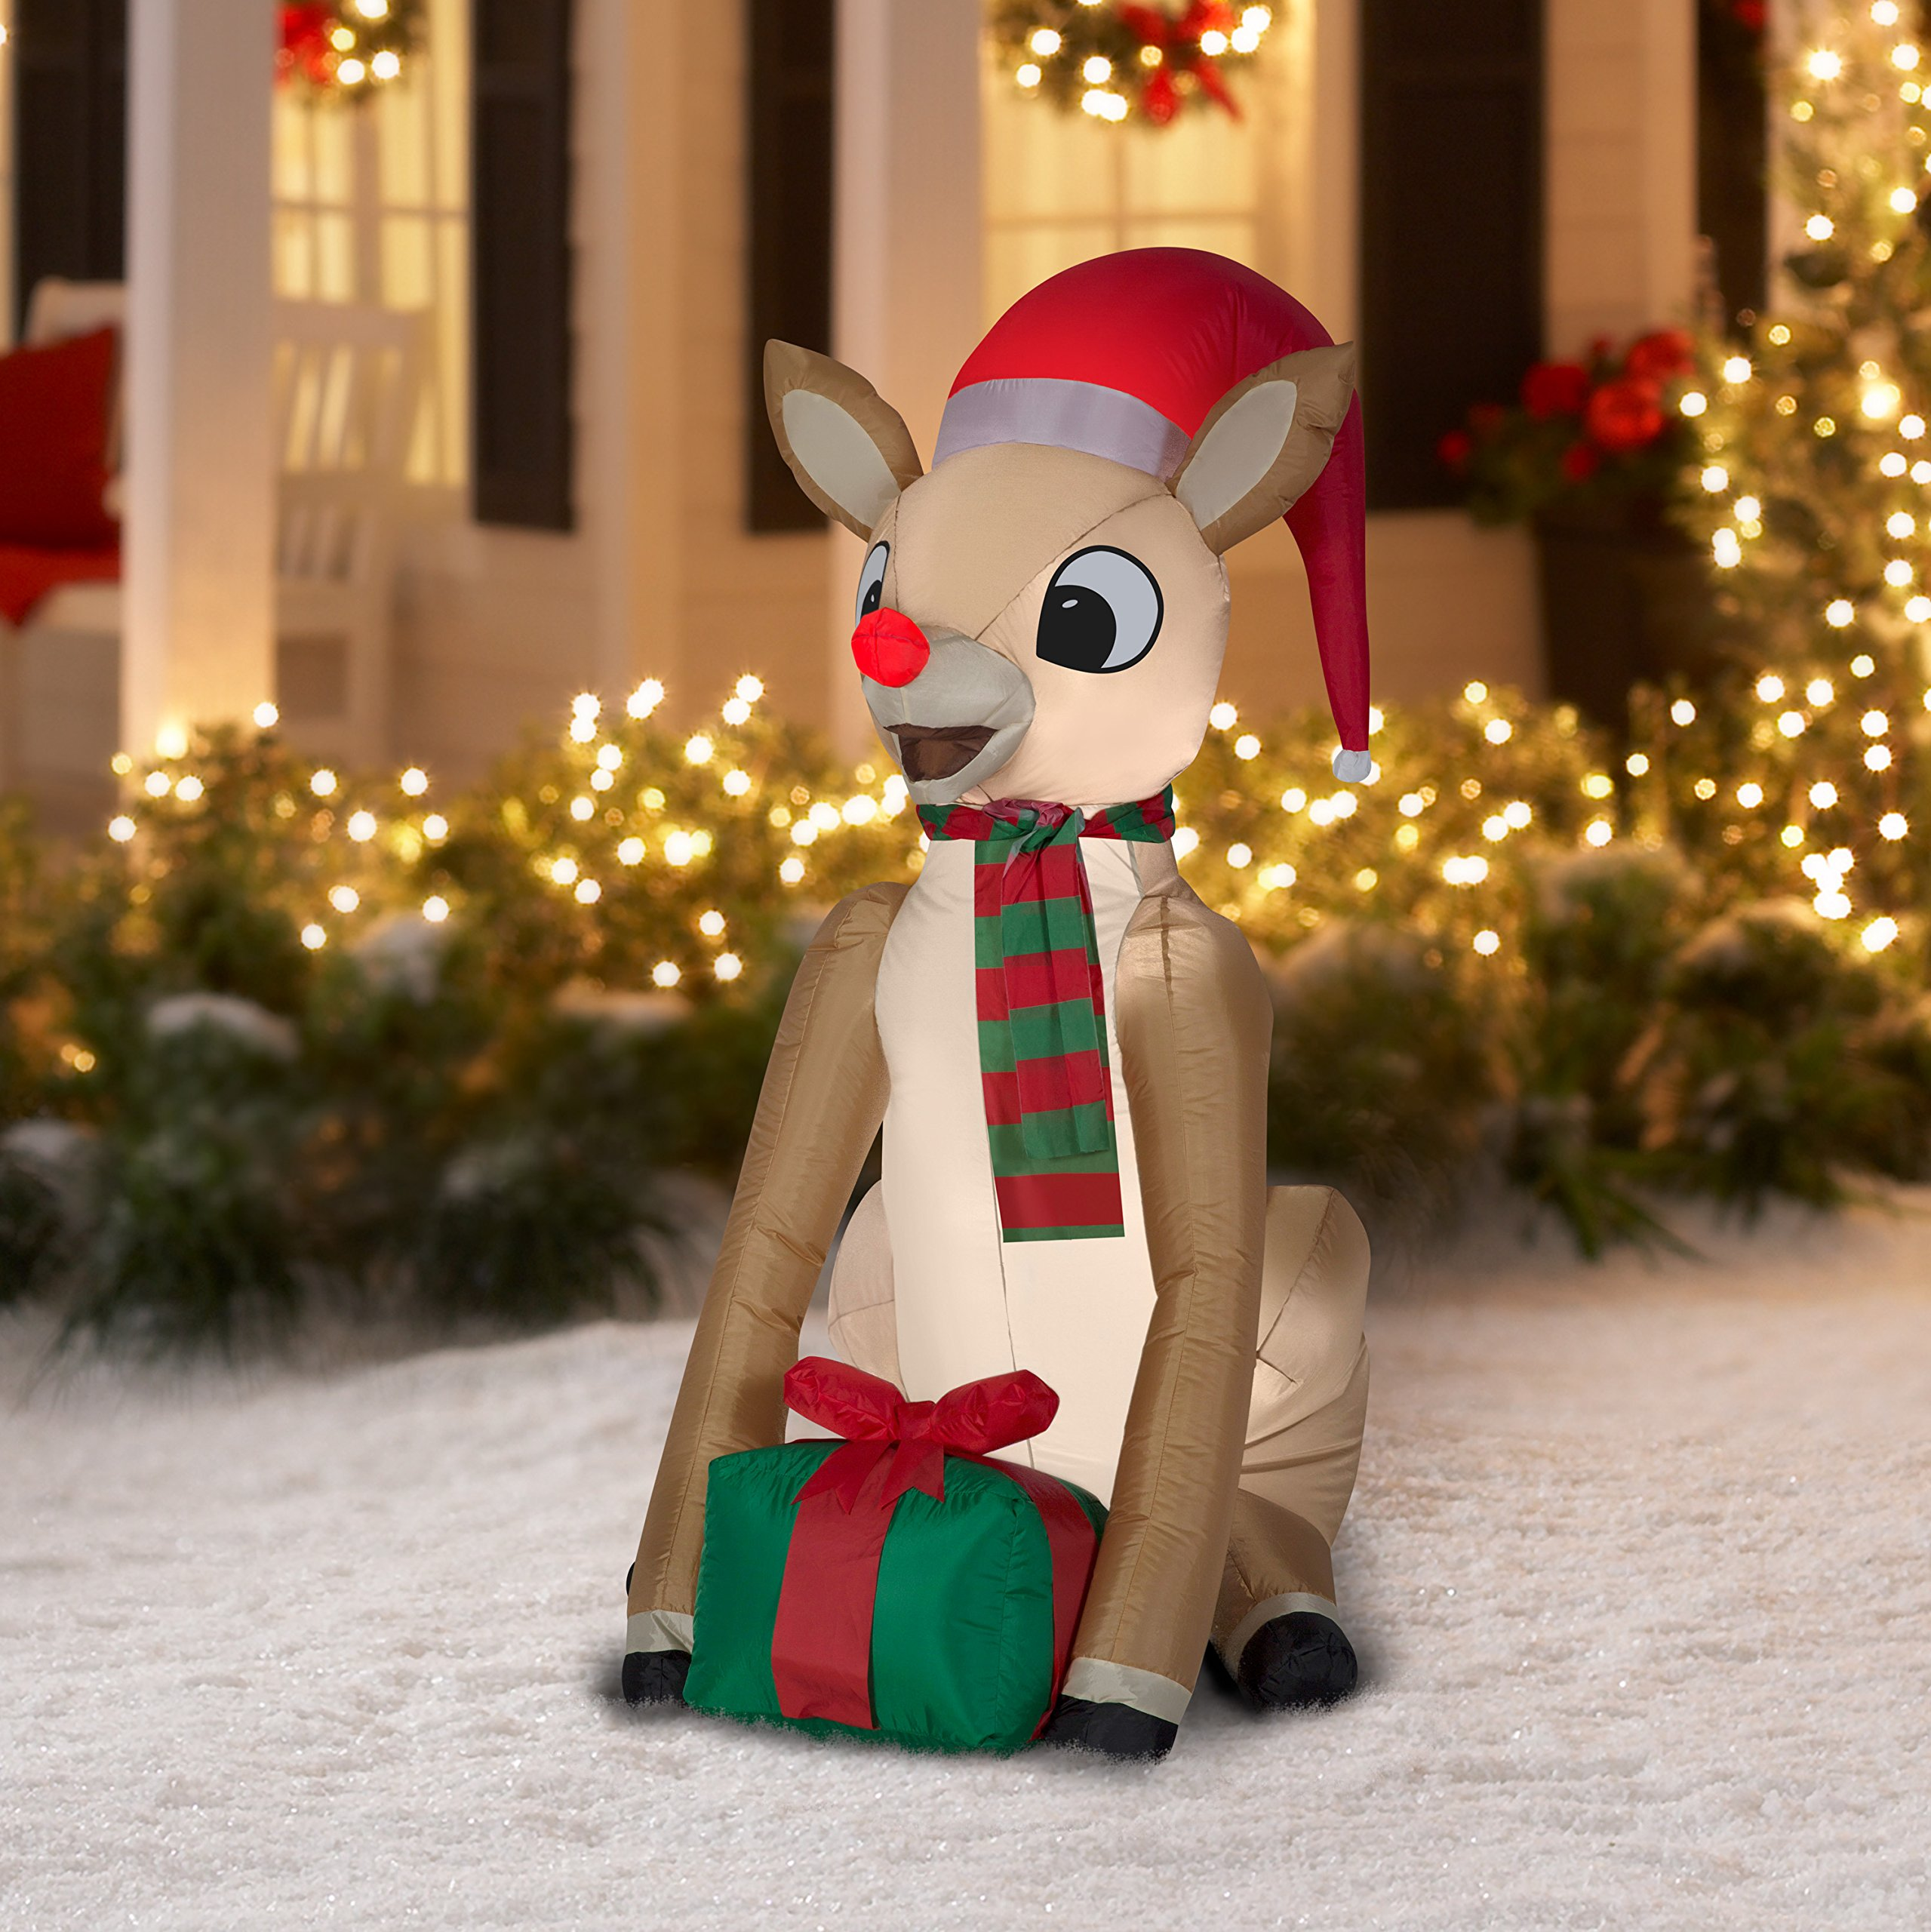 9c57a1655d68e Get Quotations · Airblown Inflatable-Rudolph with Present by Gemmy  Industries